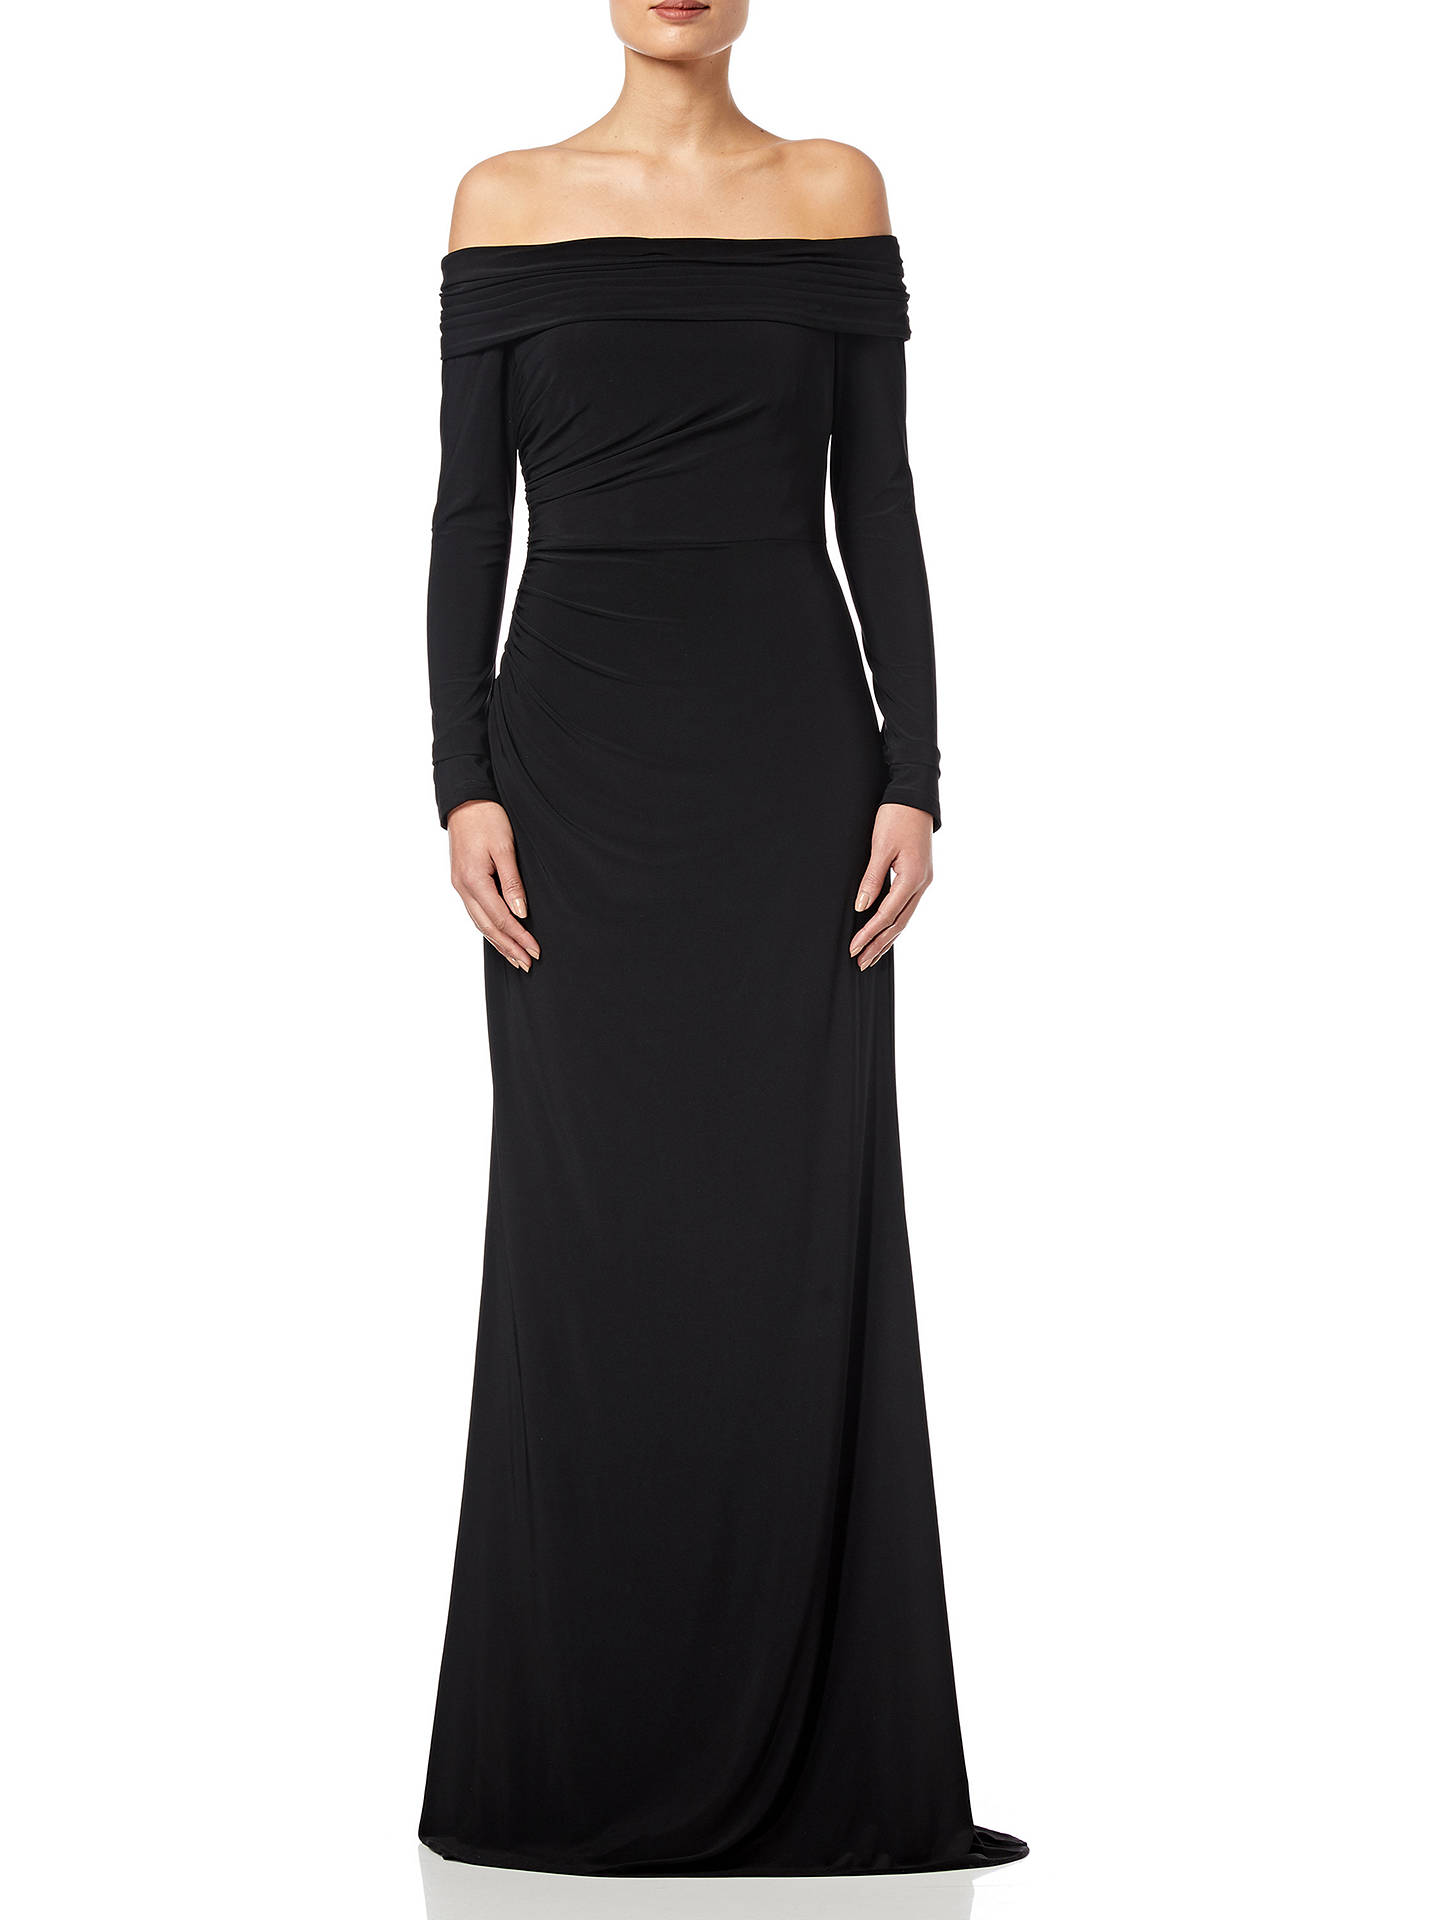 BuyAdrianna Papell Draped Jersey Long Dress, Black, 6 Online at johnlewis.com